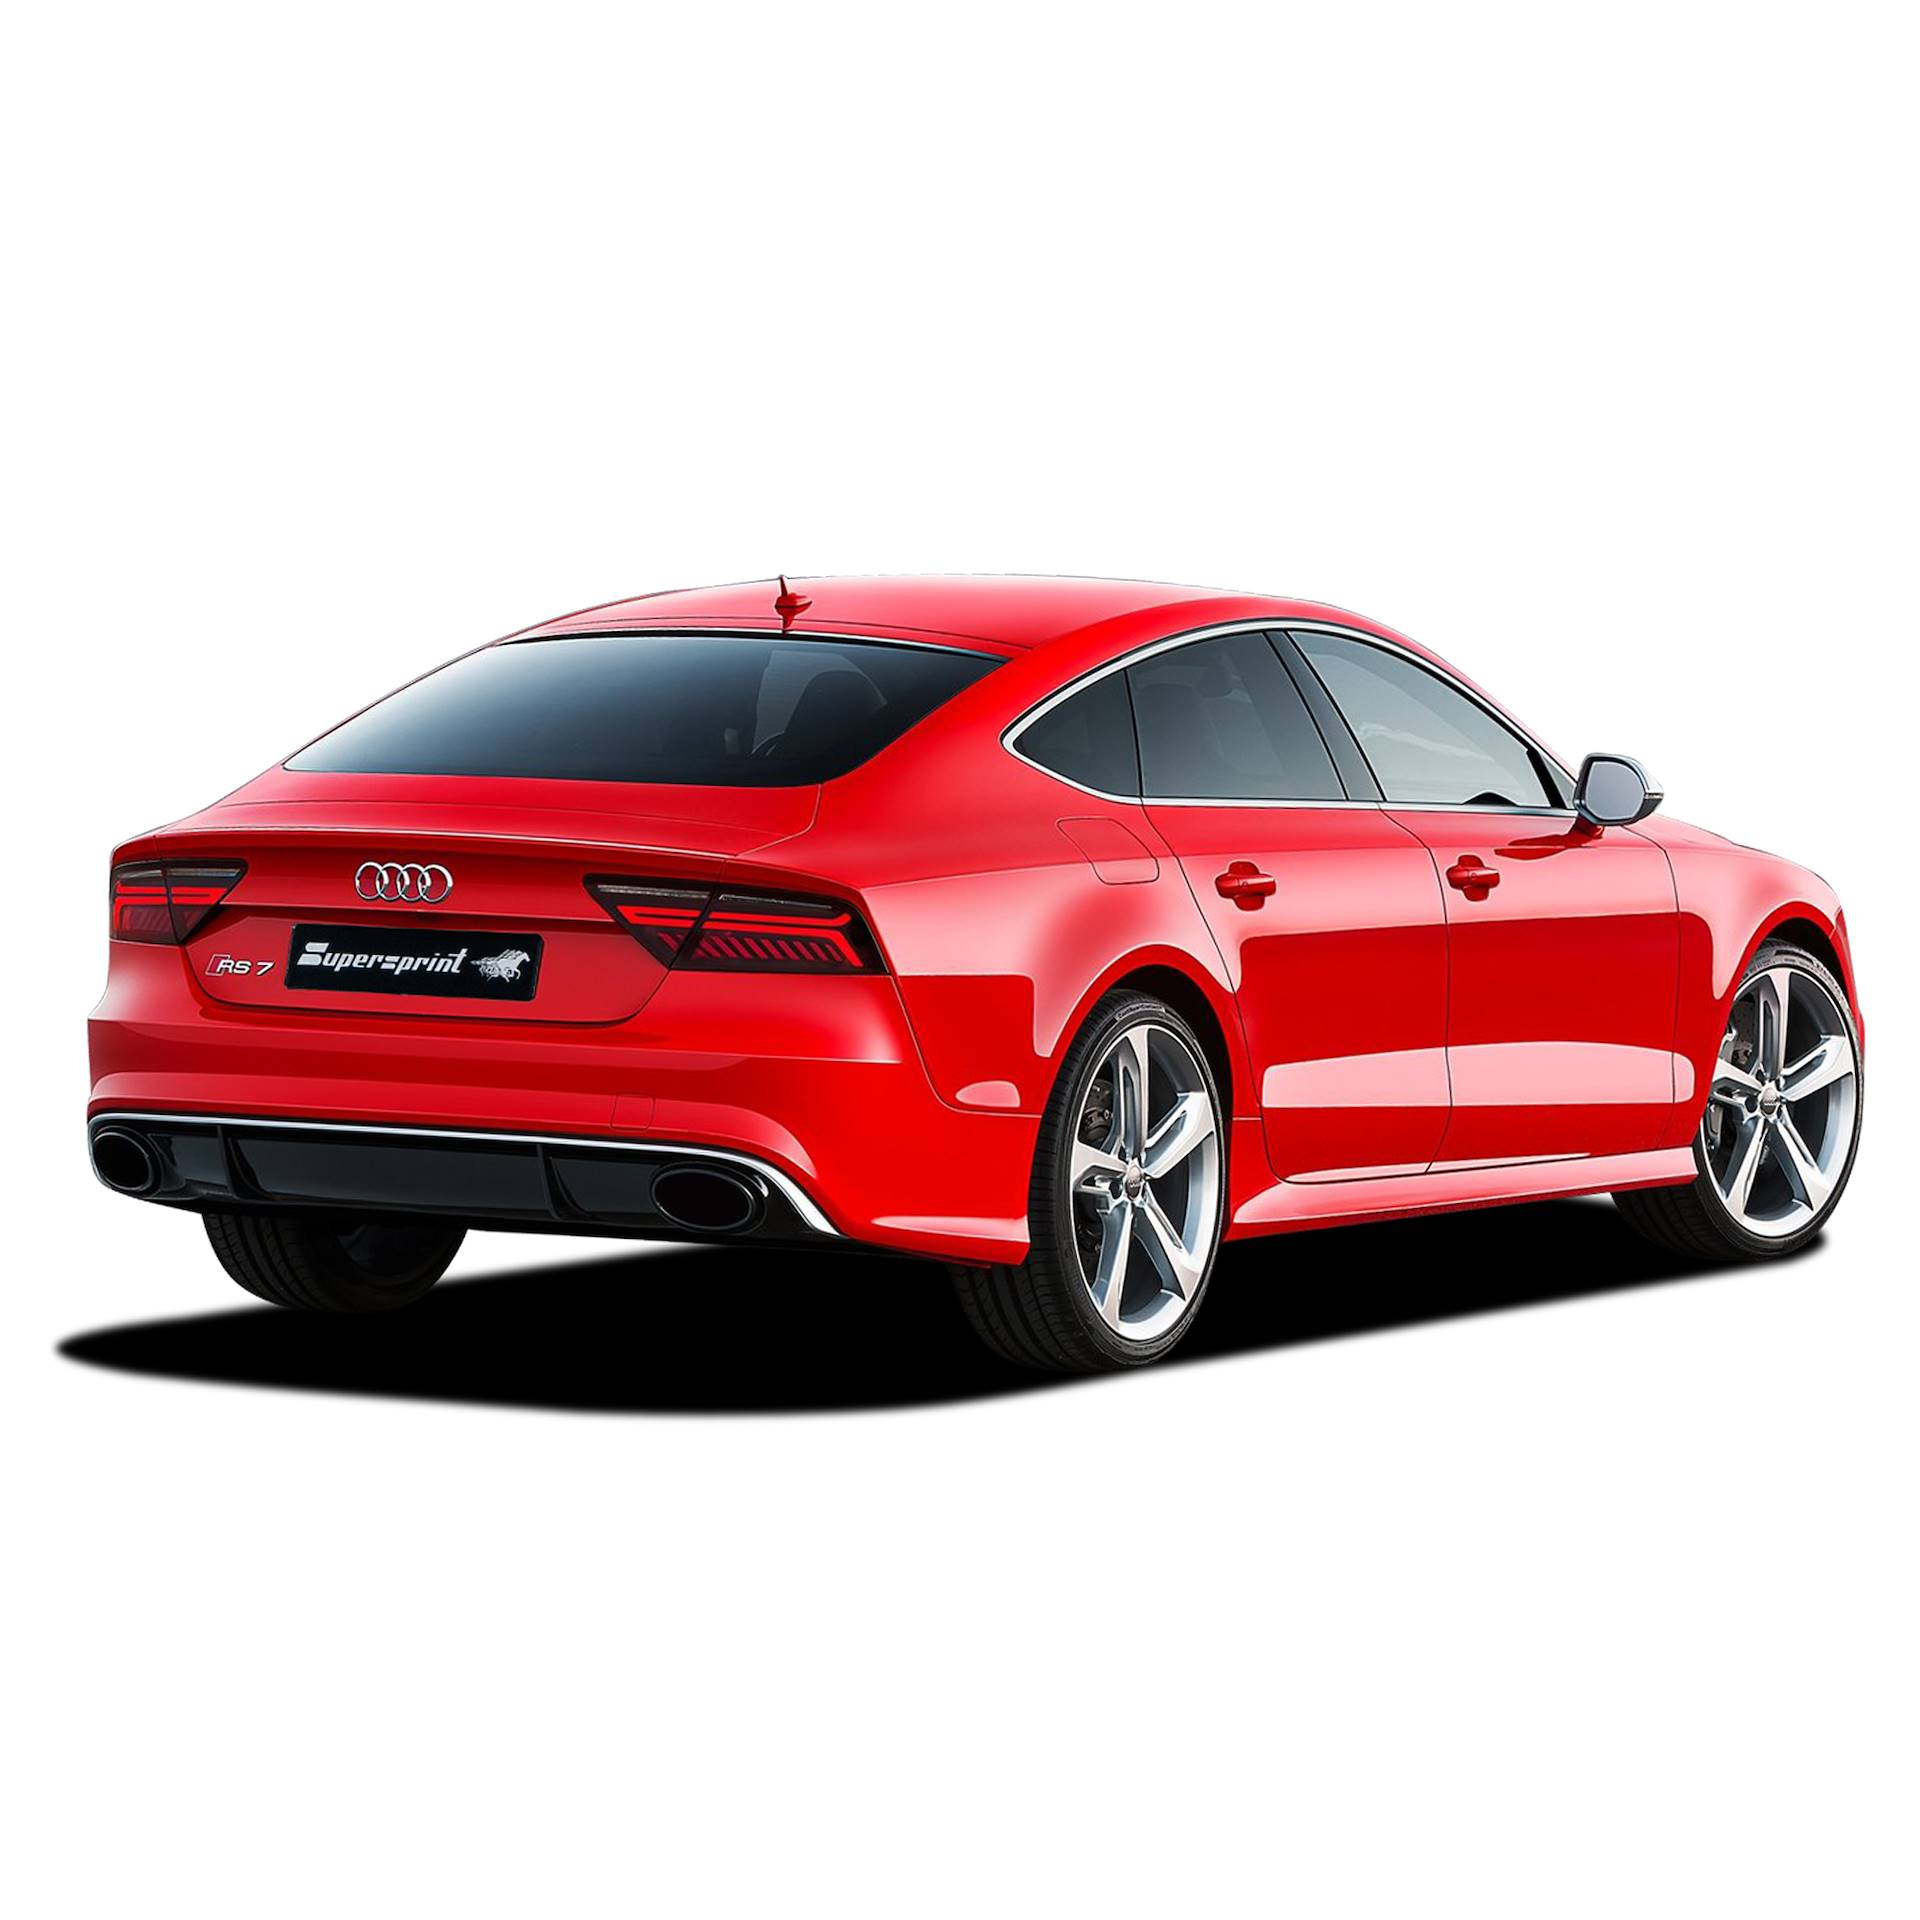 2017 Audi Rs 7 Camshaft: Performance Sport Exhaust For Audi RS7 Facelift, AUDI A7